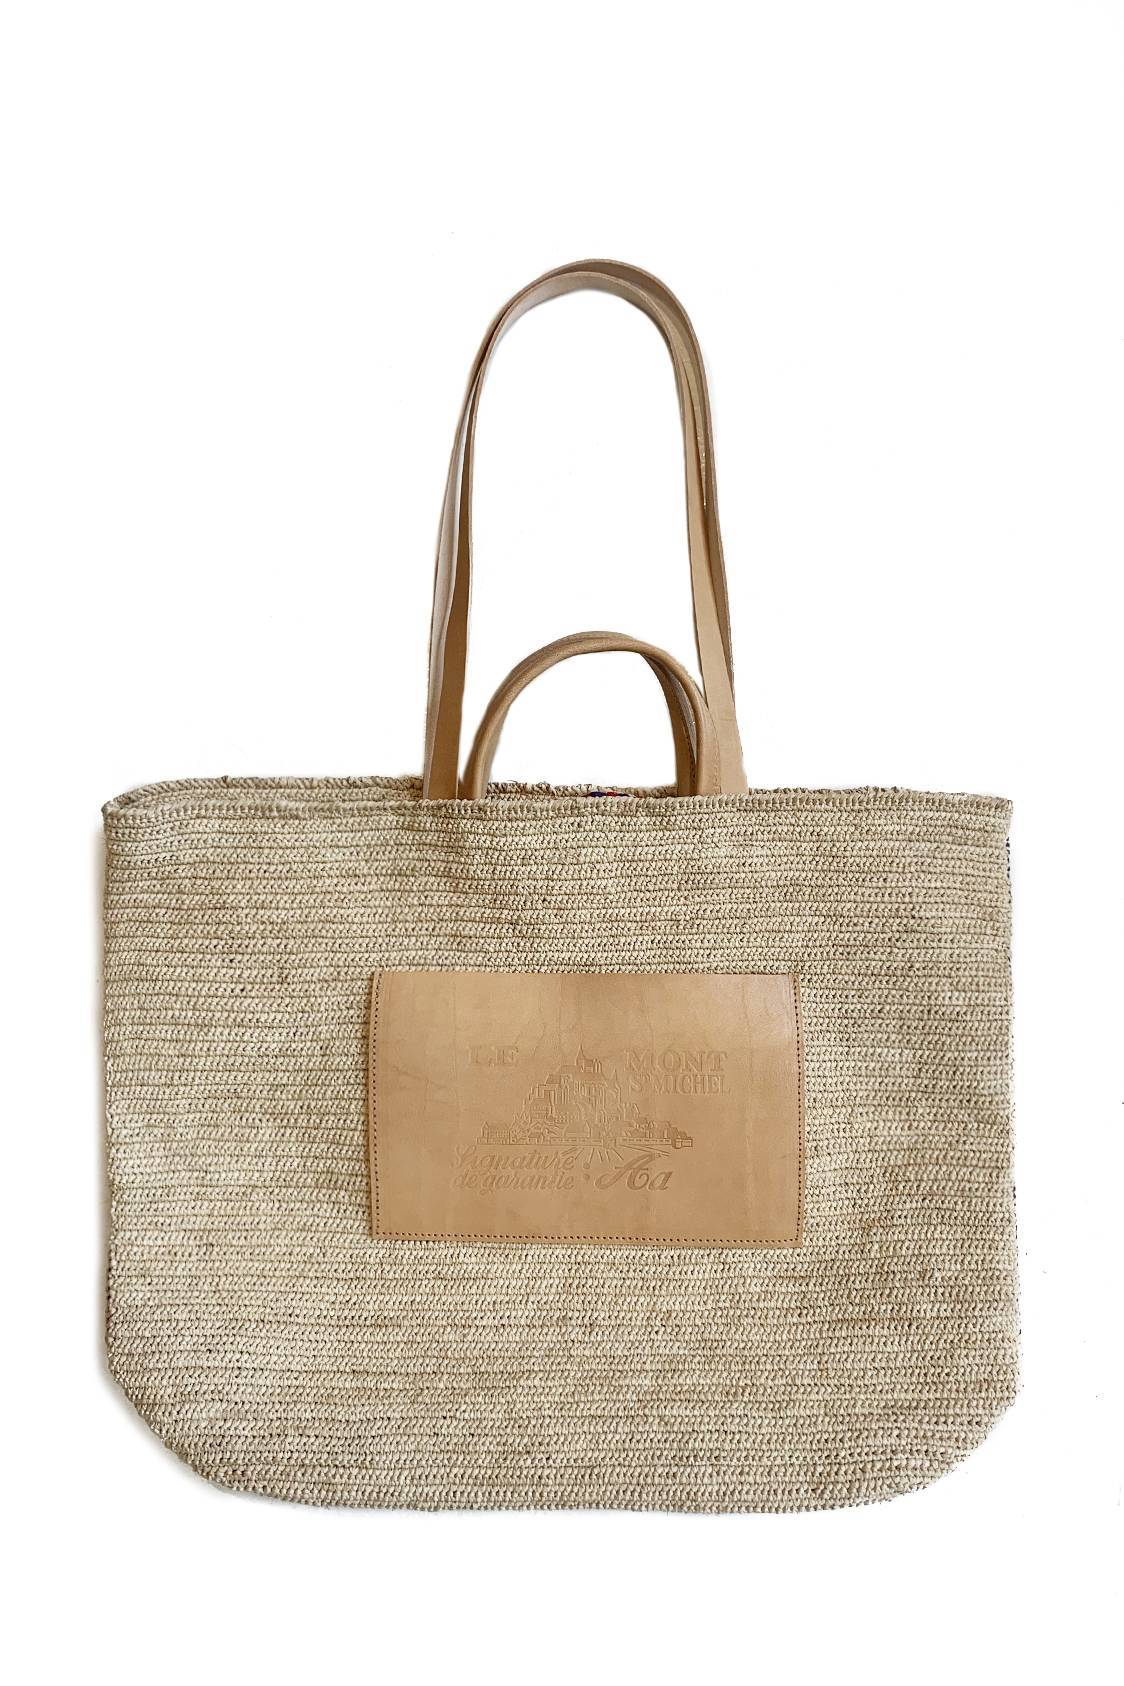 Leather & Straw bag